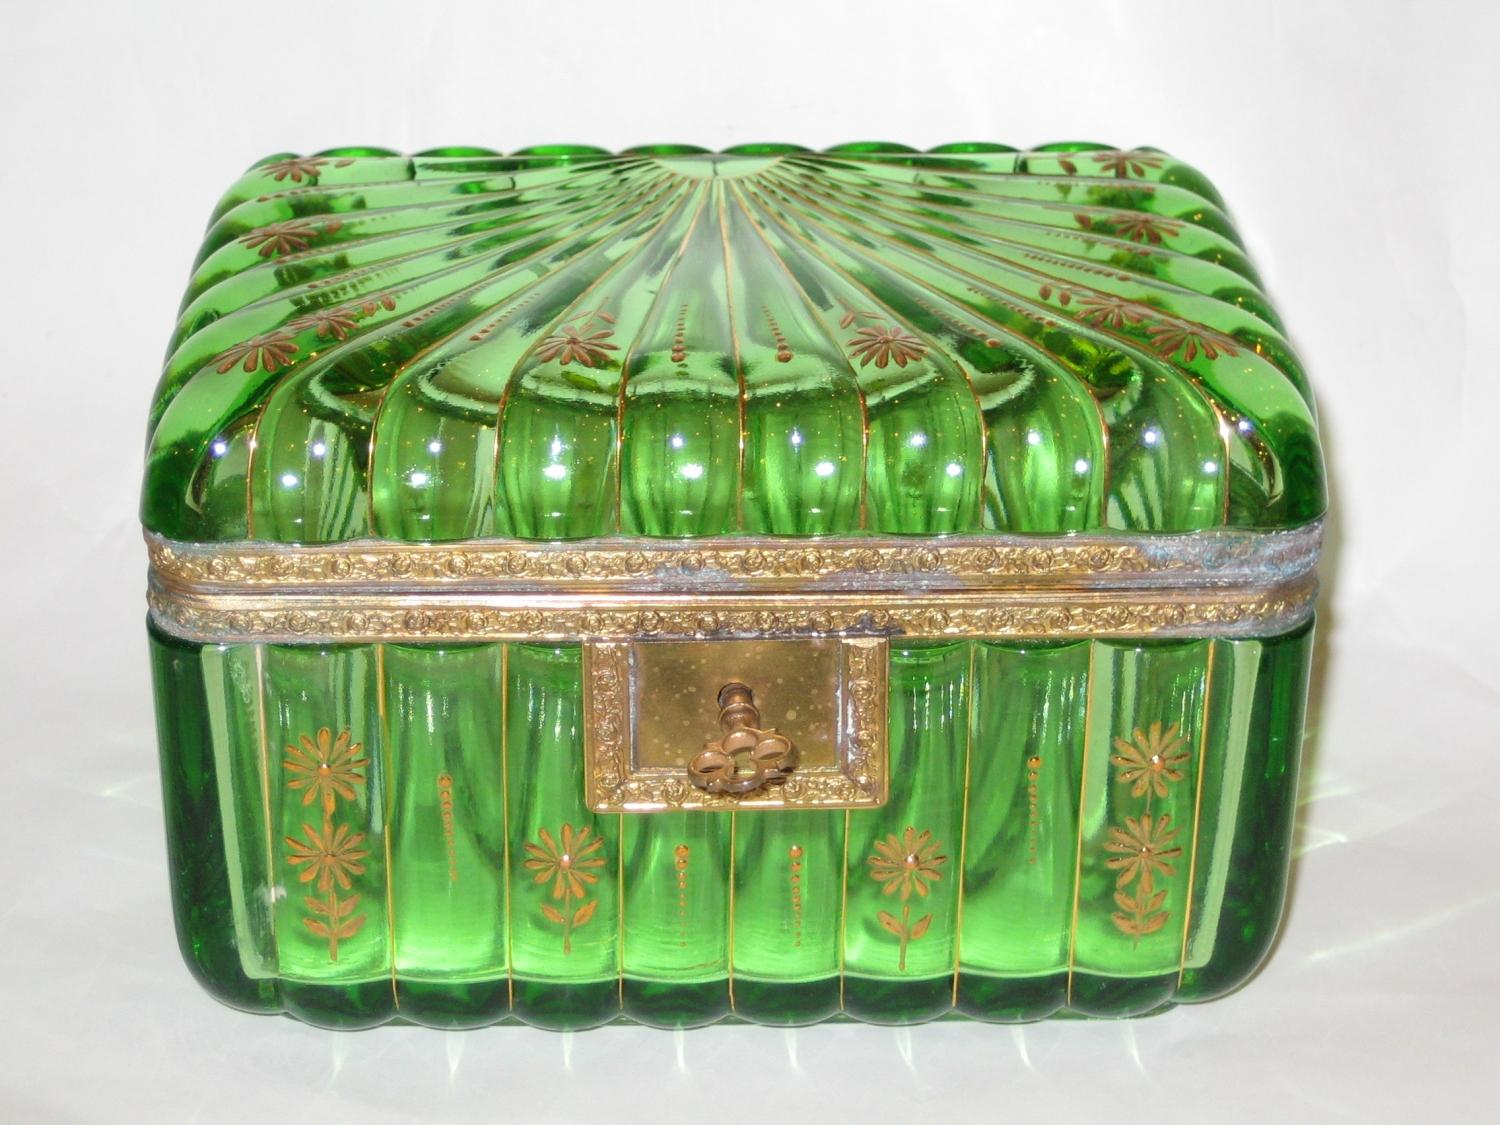 Unusual Antique Green Glass Casket